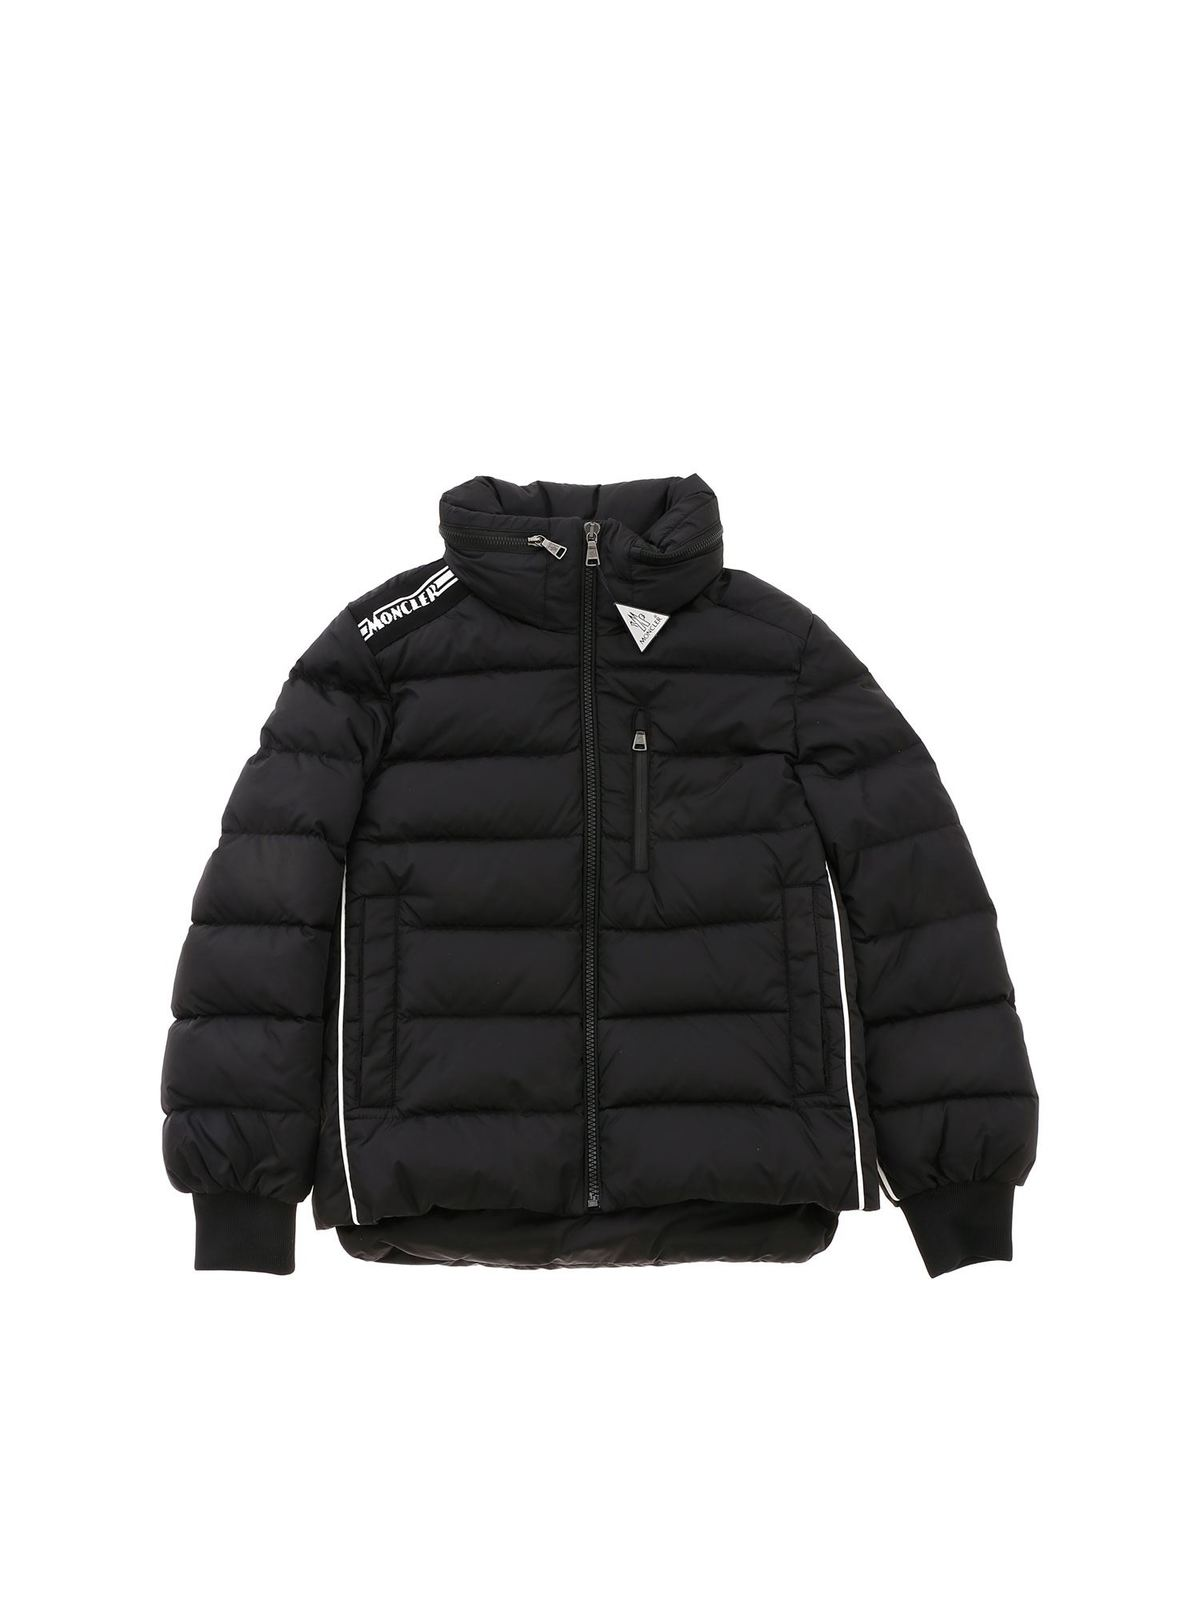 MONCLER JR QUEYRON DOWN JACKET IN BLACK